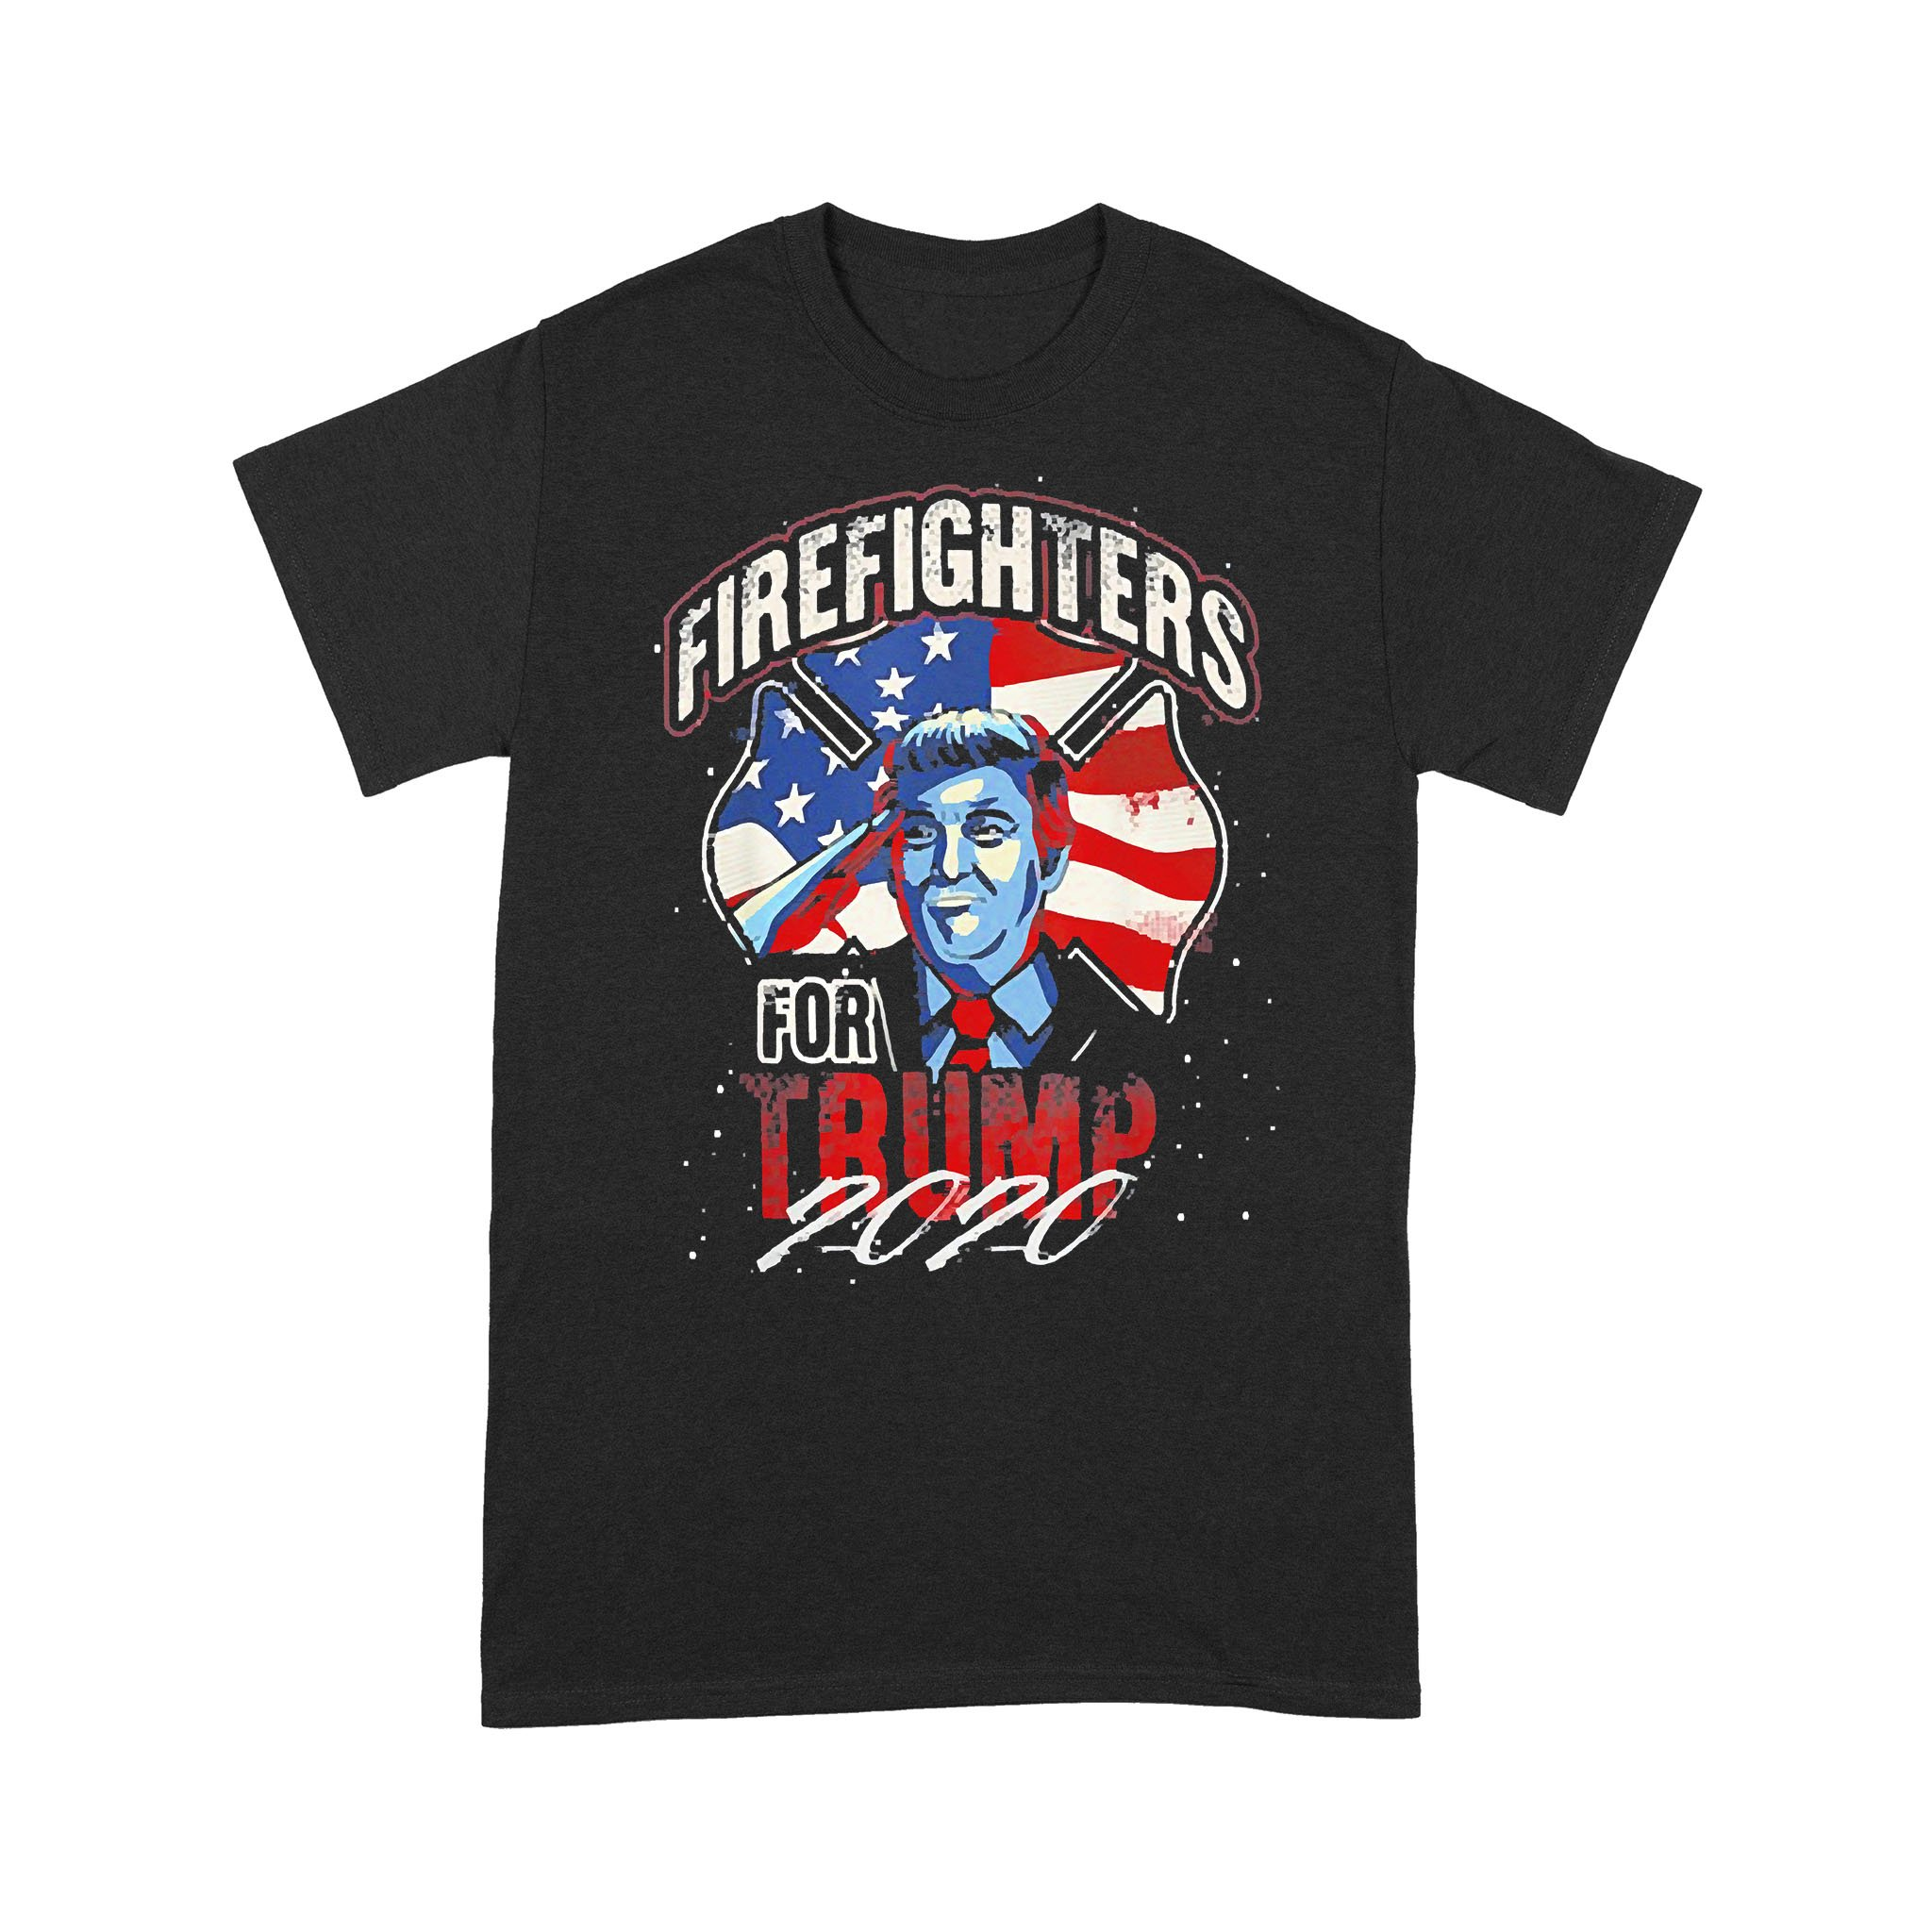 Firefighters For Trump 2020 Fire Fighter T-shirt